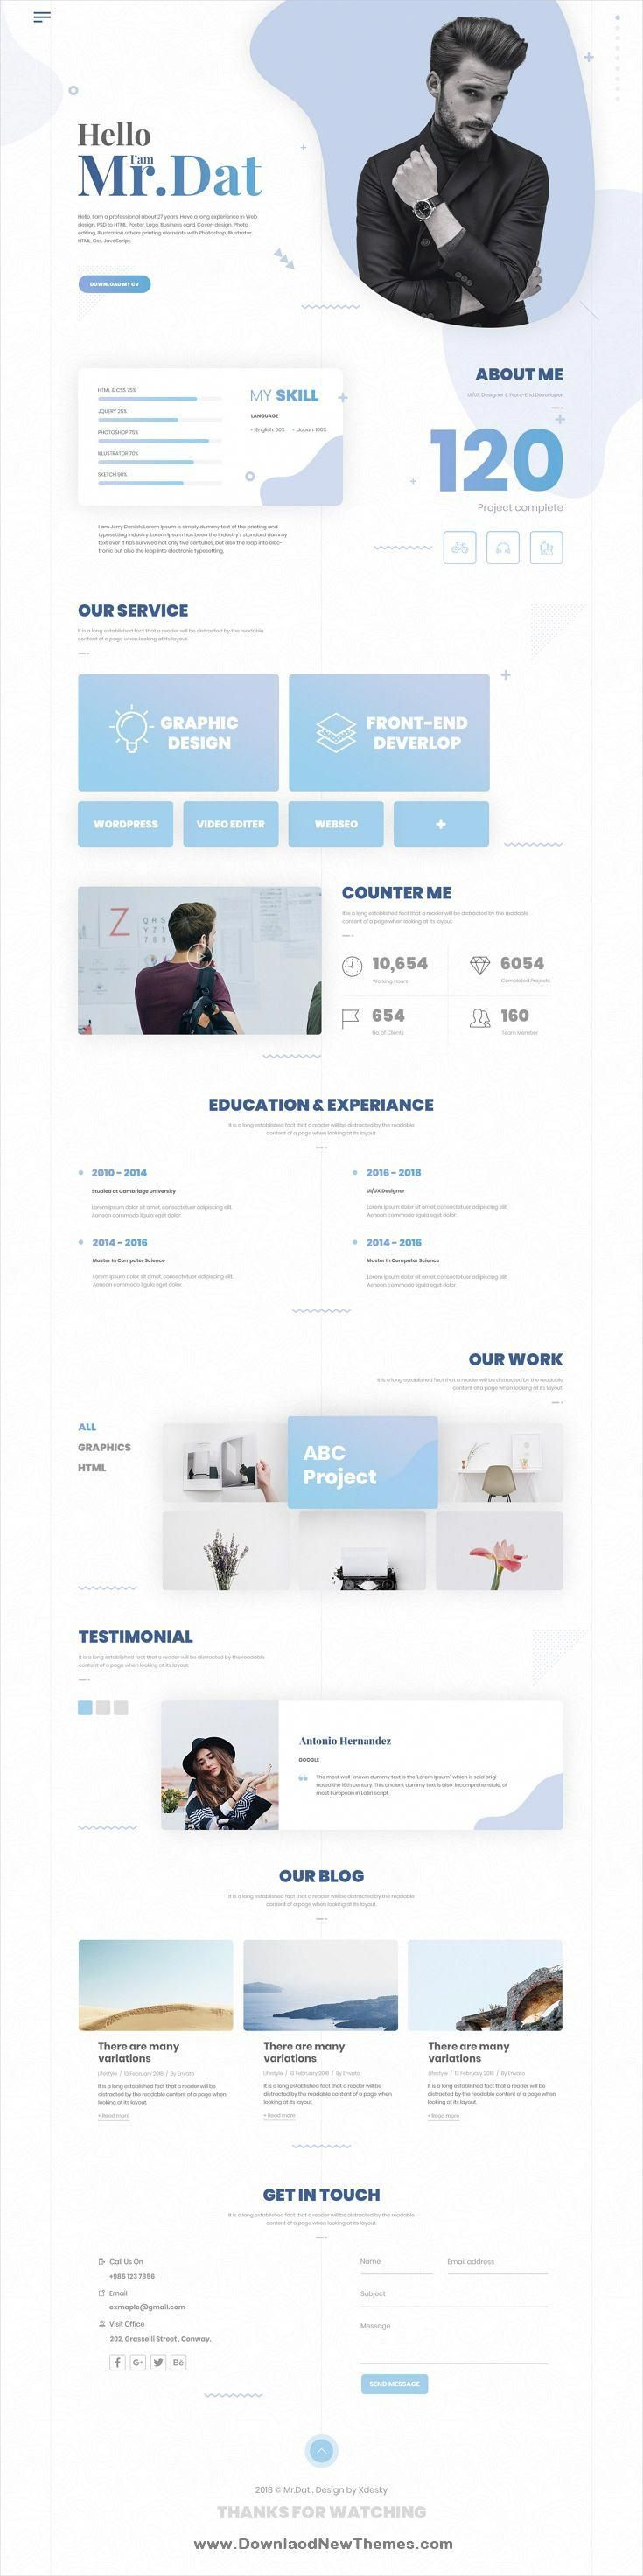 Perfas Is A Clean And Modern Design Psd Template For Creative Resume Vcard And Portfolio Showca Web App Design Web Design Inspiration Creative Web Design